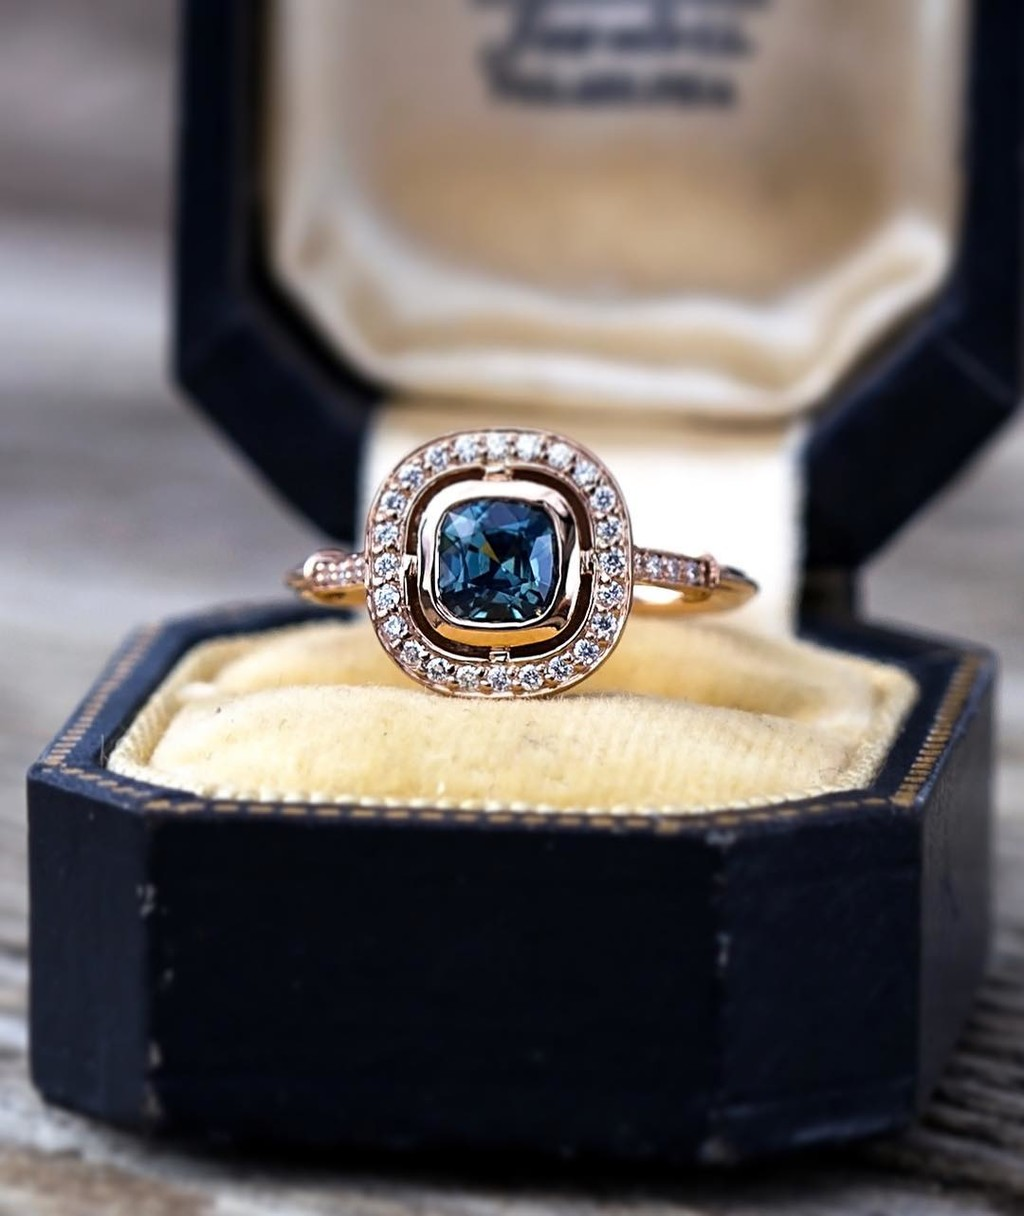 ✨👀💫Exciting things are happening around here! Sneak peak of one of Jacob's freshly crafted one-of-a-kind sapphire rings!